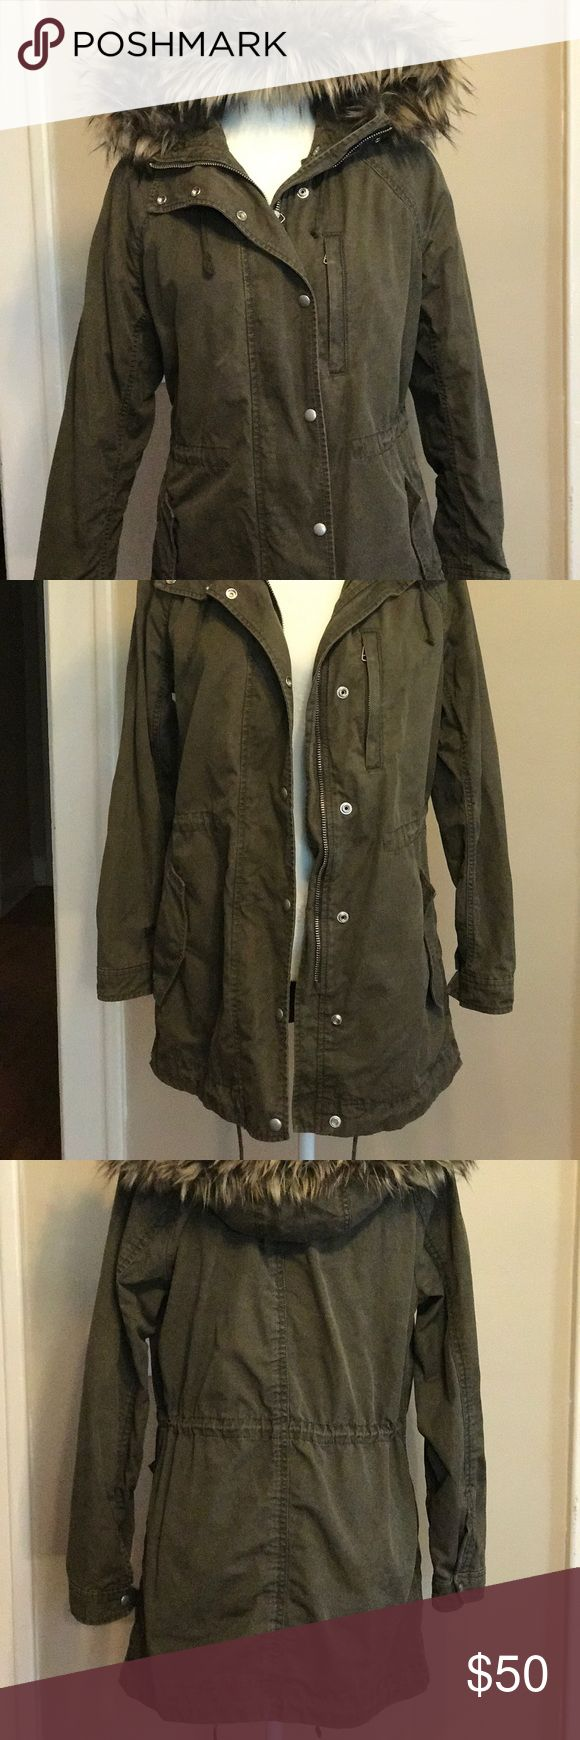 Army green gap coat two in one